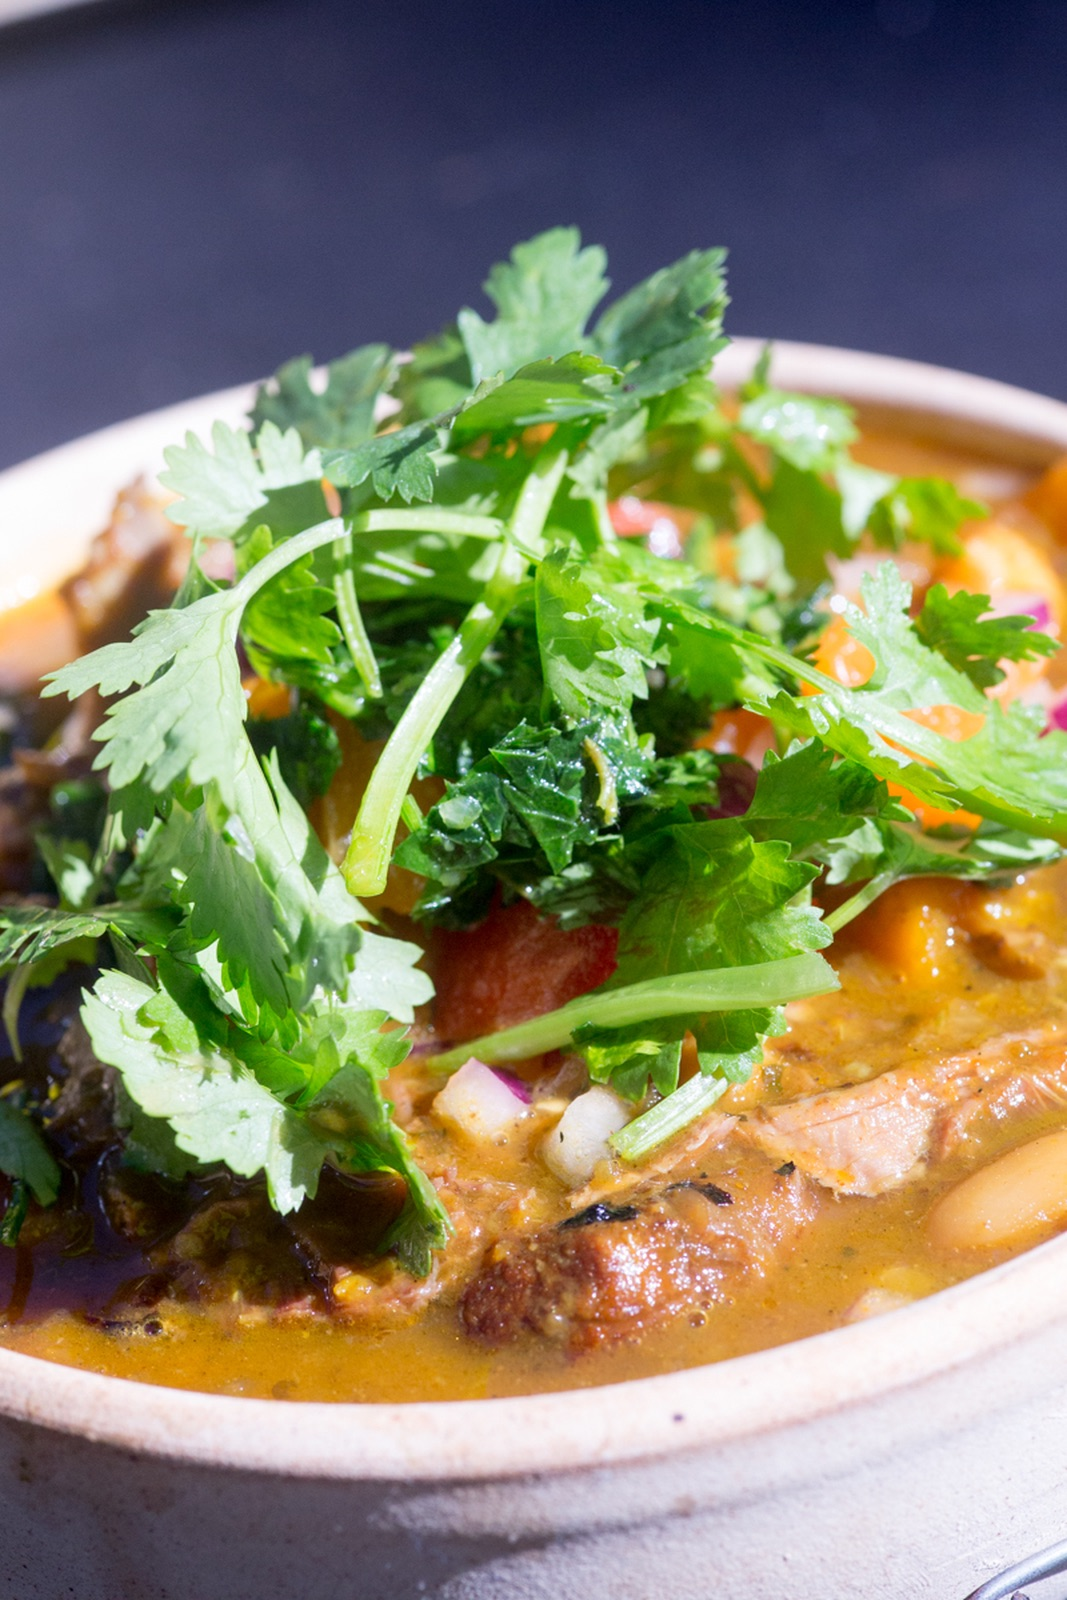 Gascoyne Mundilya Station goat curry served with rice and pappadums $28.00 - Availability: Dinner